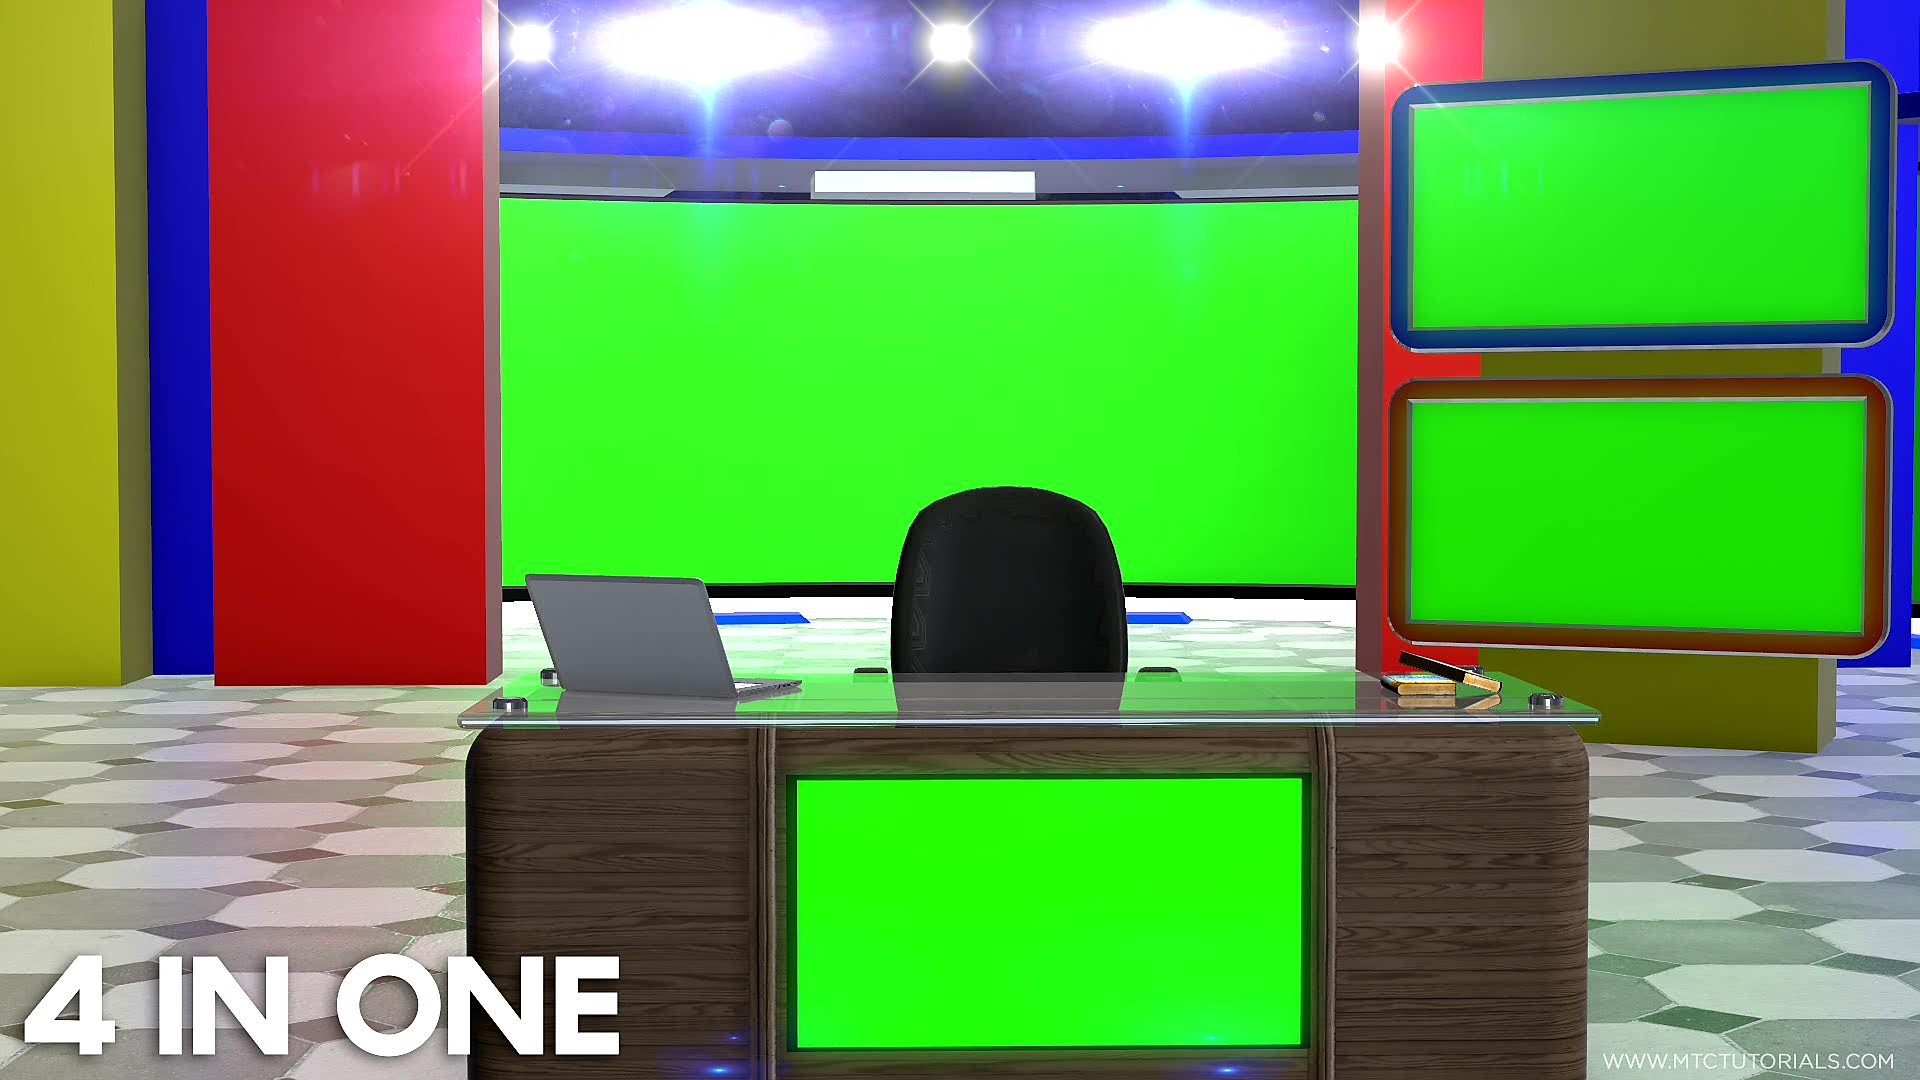 News Desk Chair Table Green Screen Transparent Wallpapers By MTC Tutorials (2)2